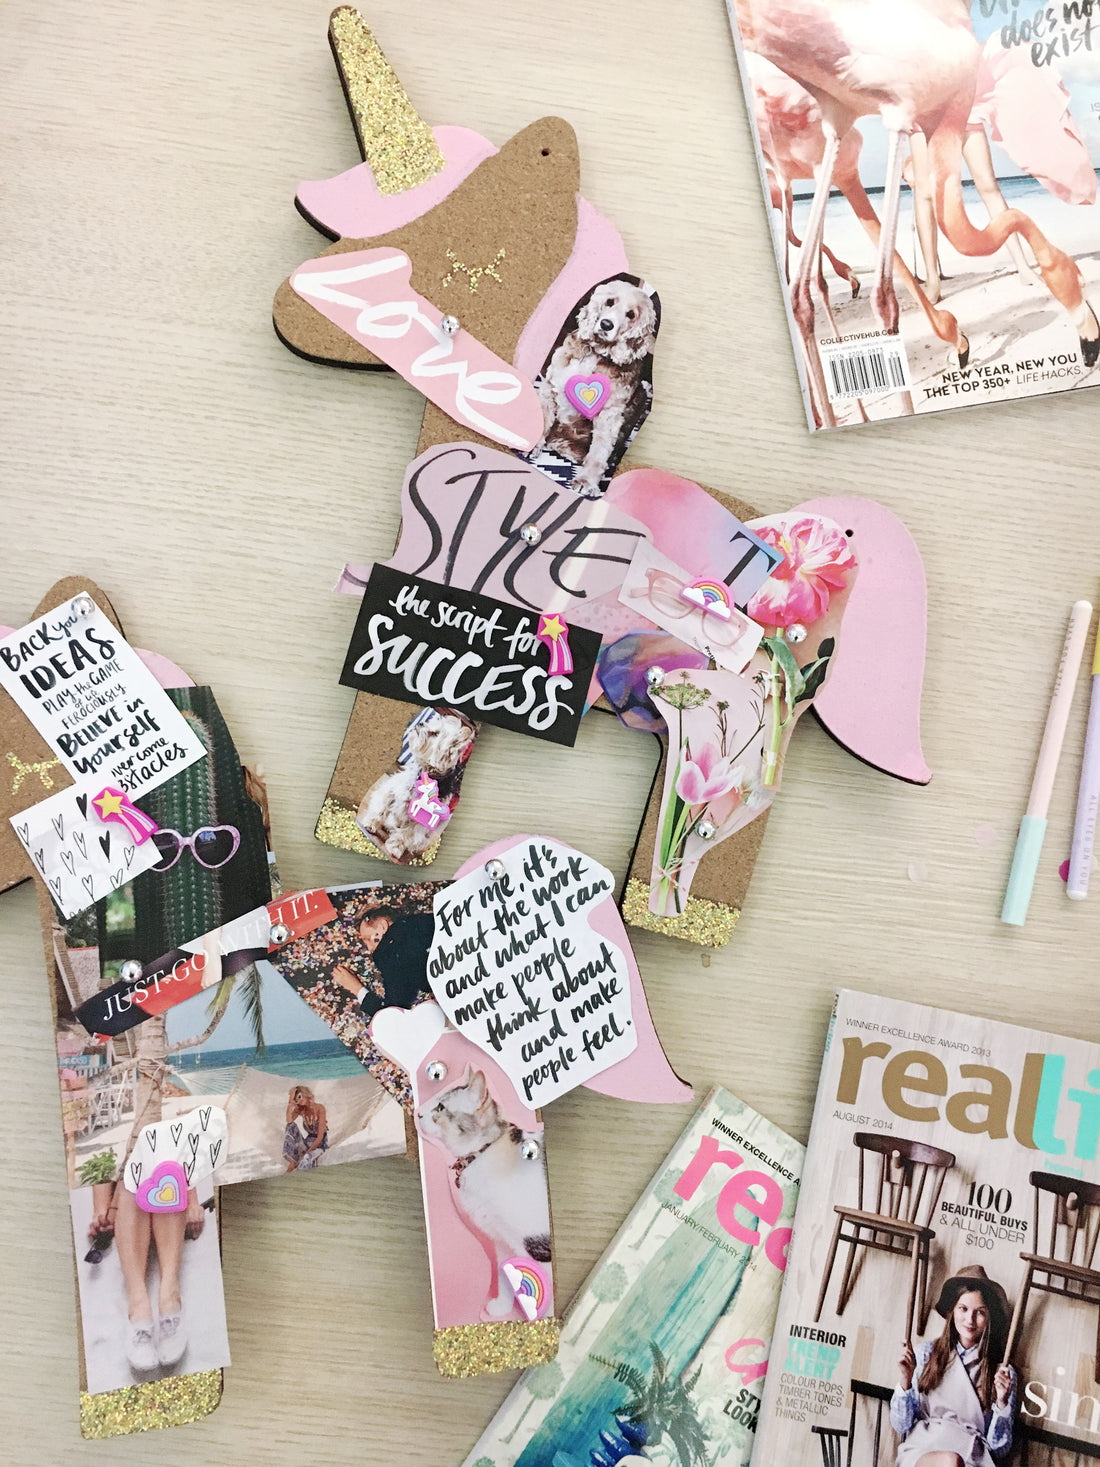 Vision Boards: How To Make One And The Ways It Can Change Your Life